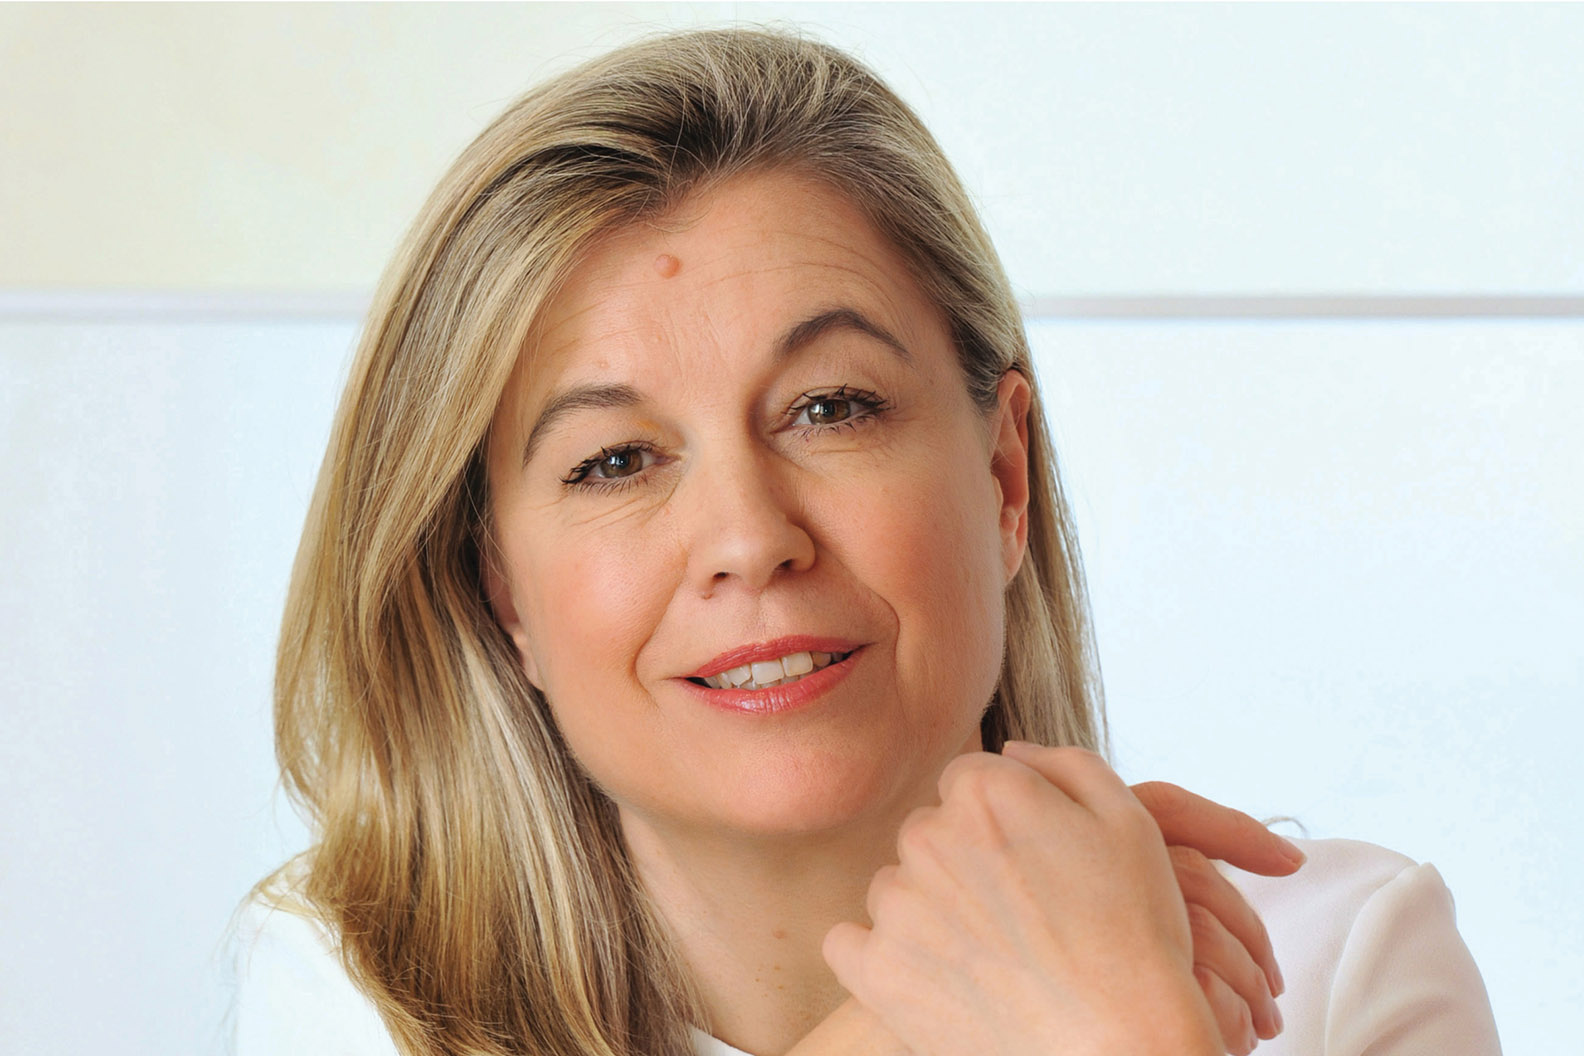 Sidonie Golombowski-Daffner, Chairperson and President of Advanced Accelerator Applications